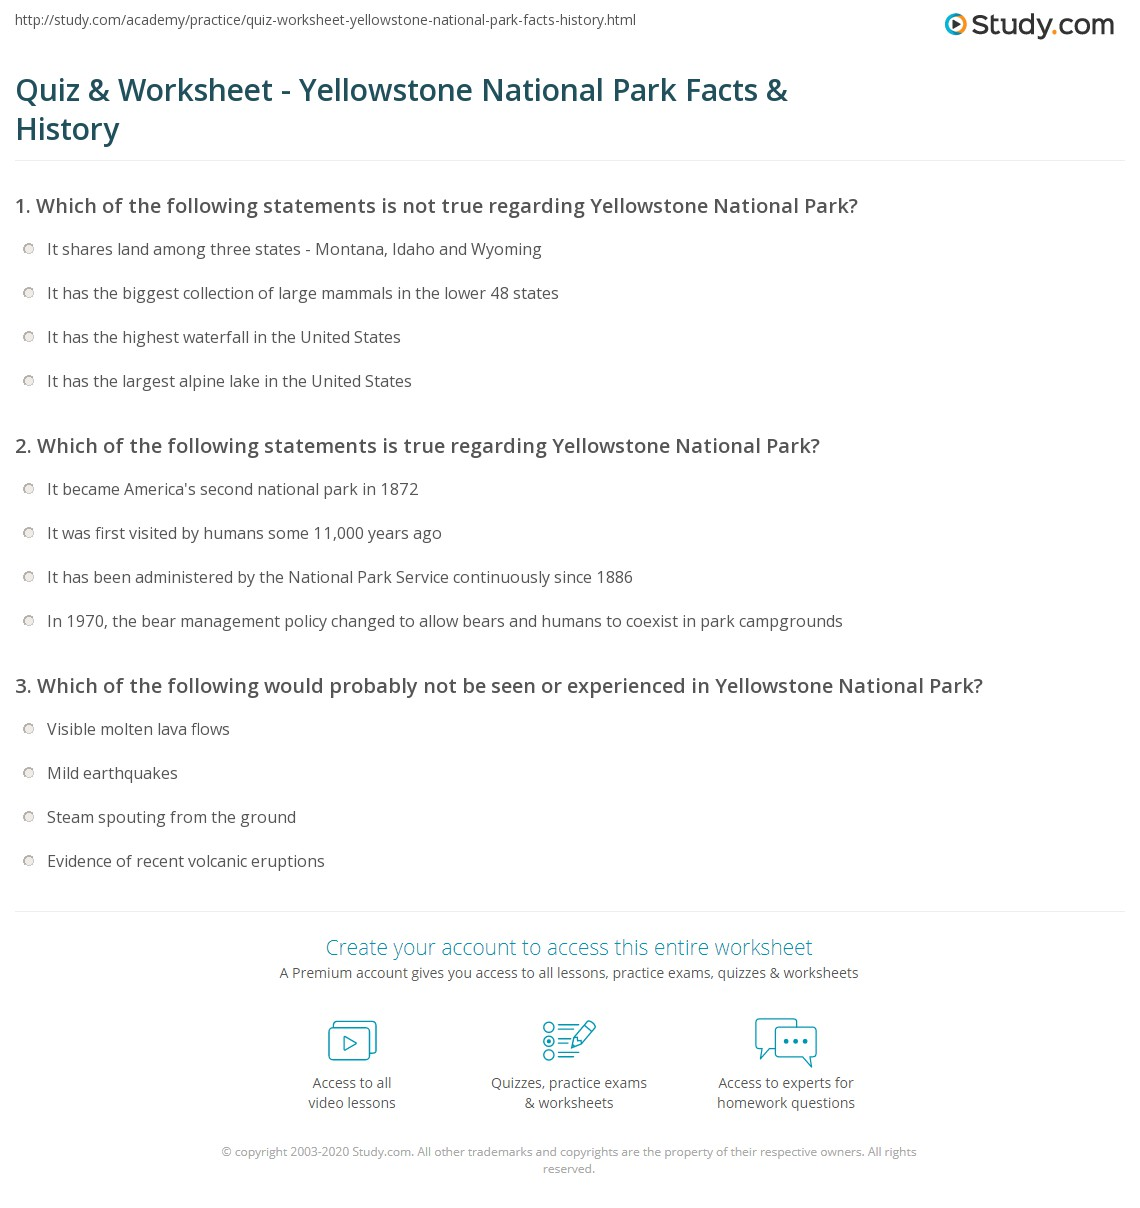 Quiz & Worksheet - Yellowstone National Park Facts & History | Study.com